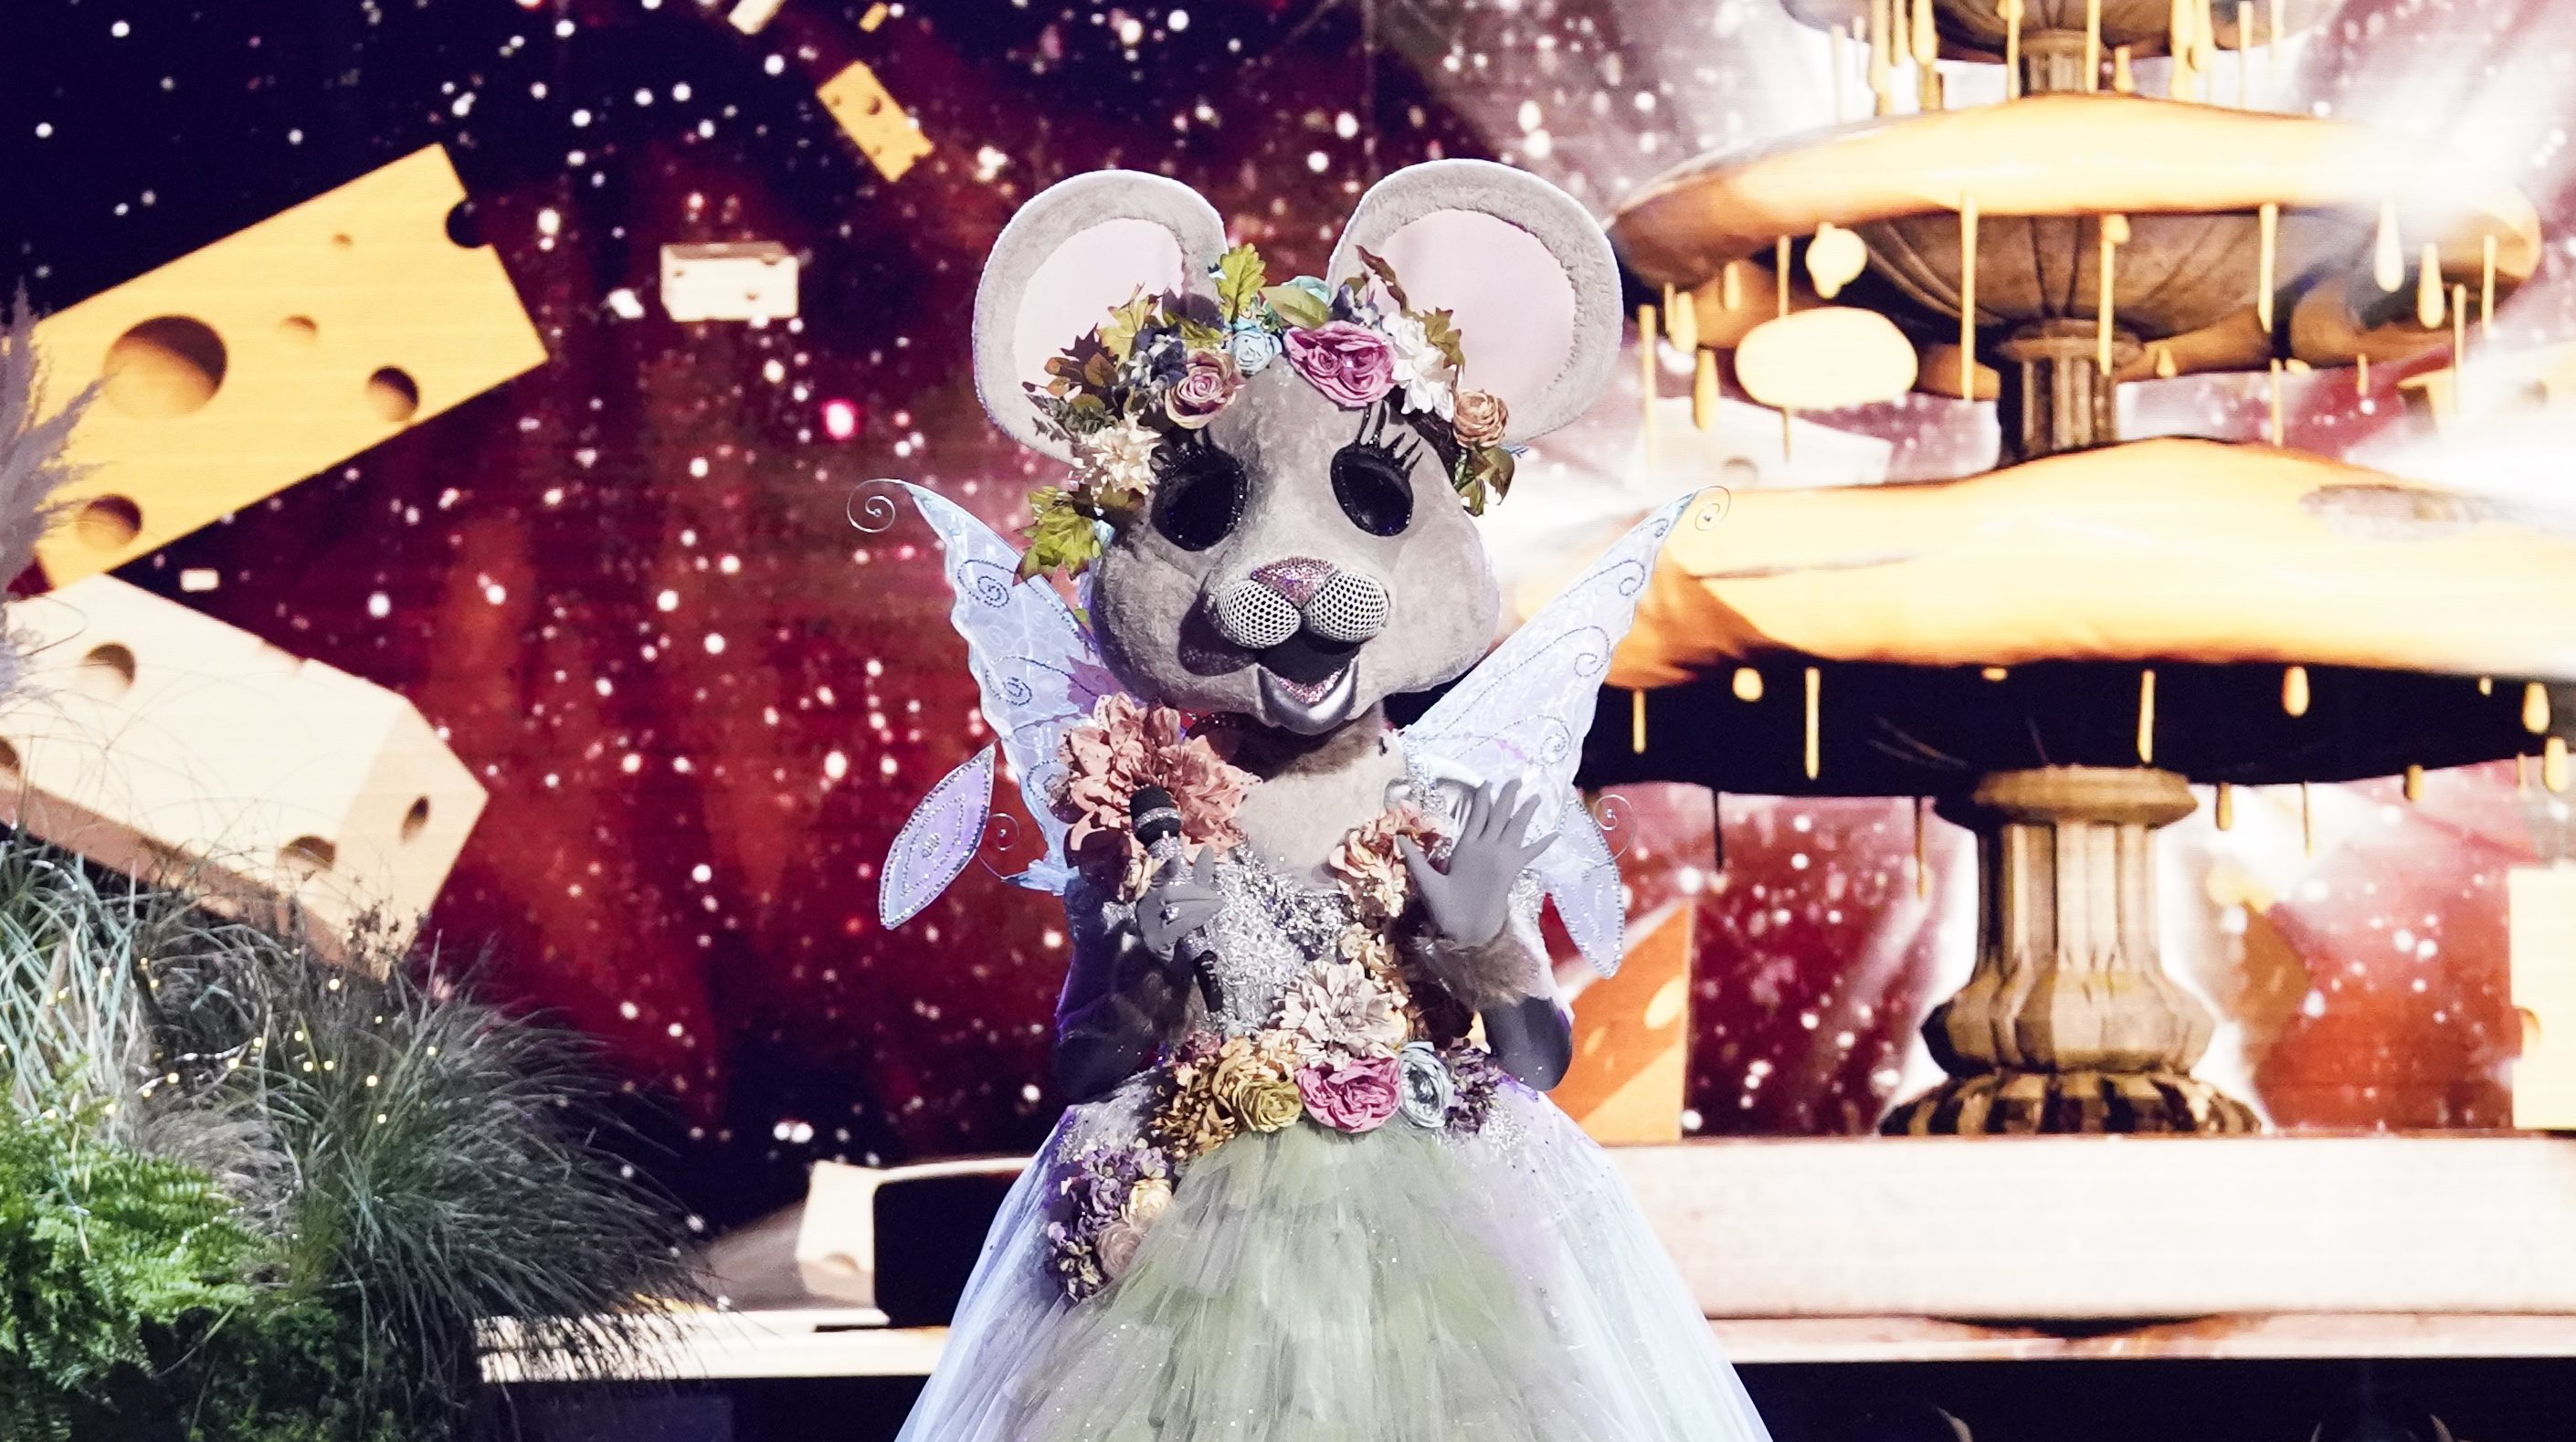 The Masked Singer Reveals The Identity Of Mouse Variety